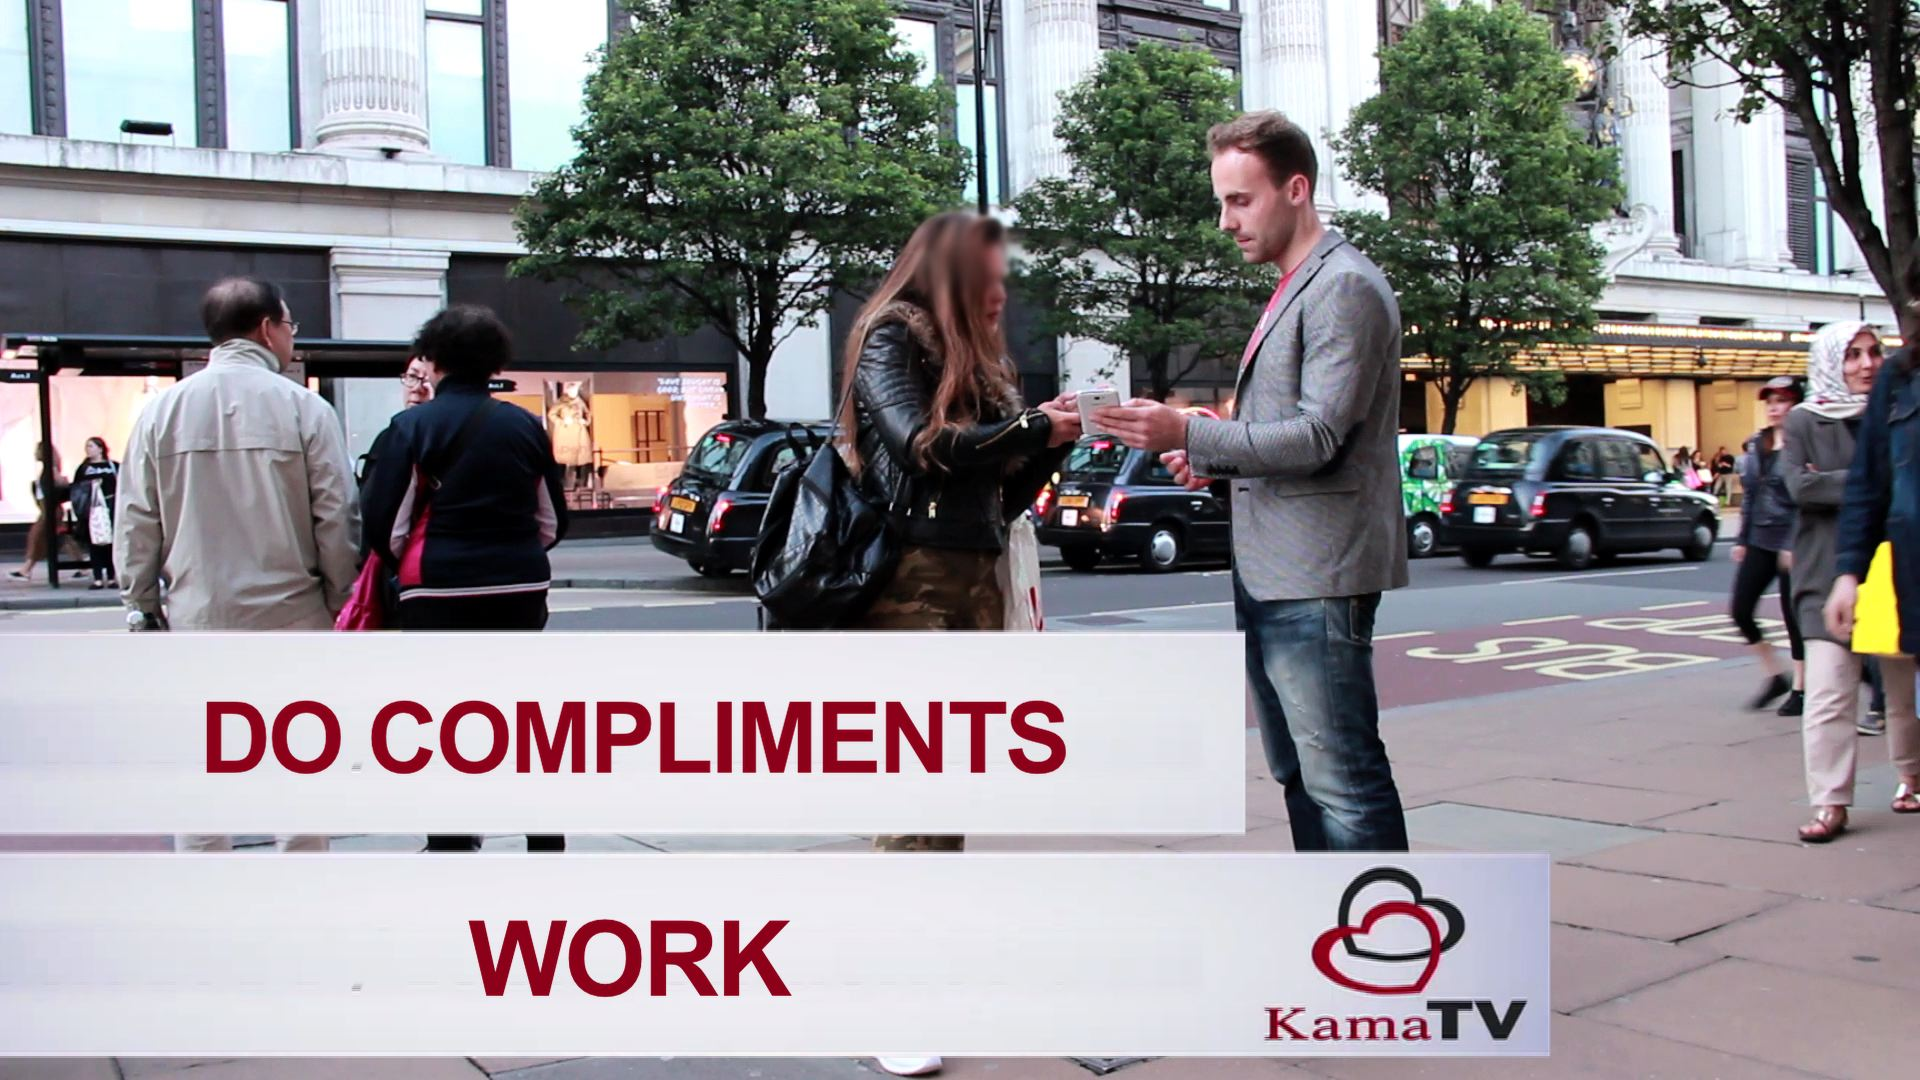 Do compliments work